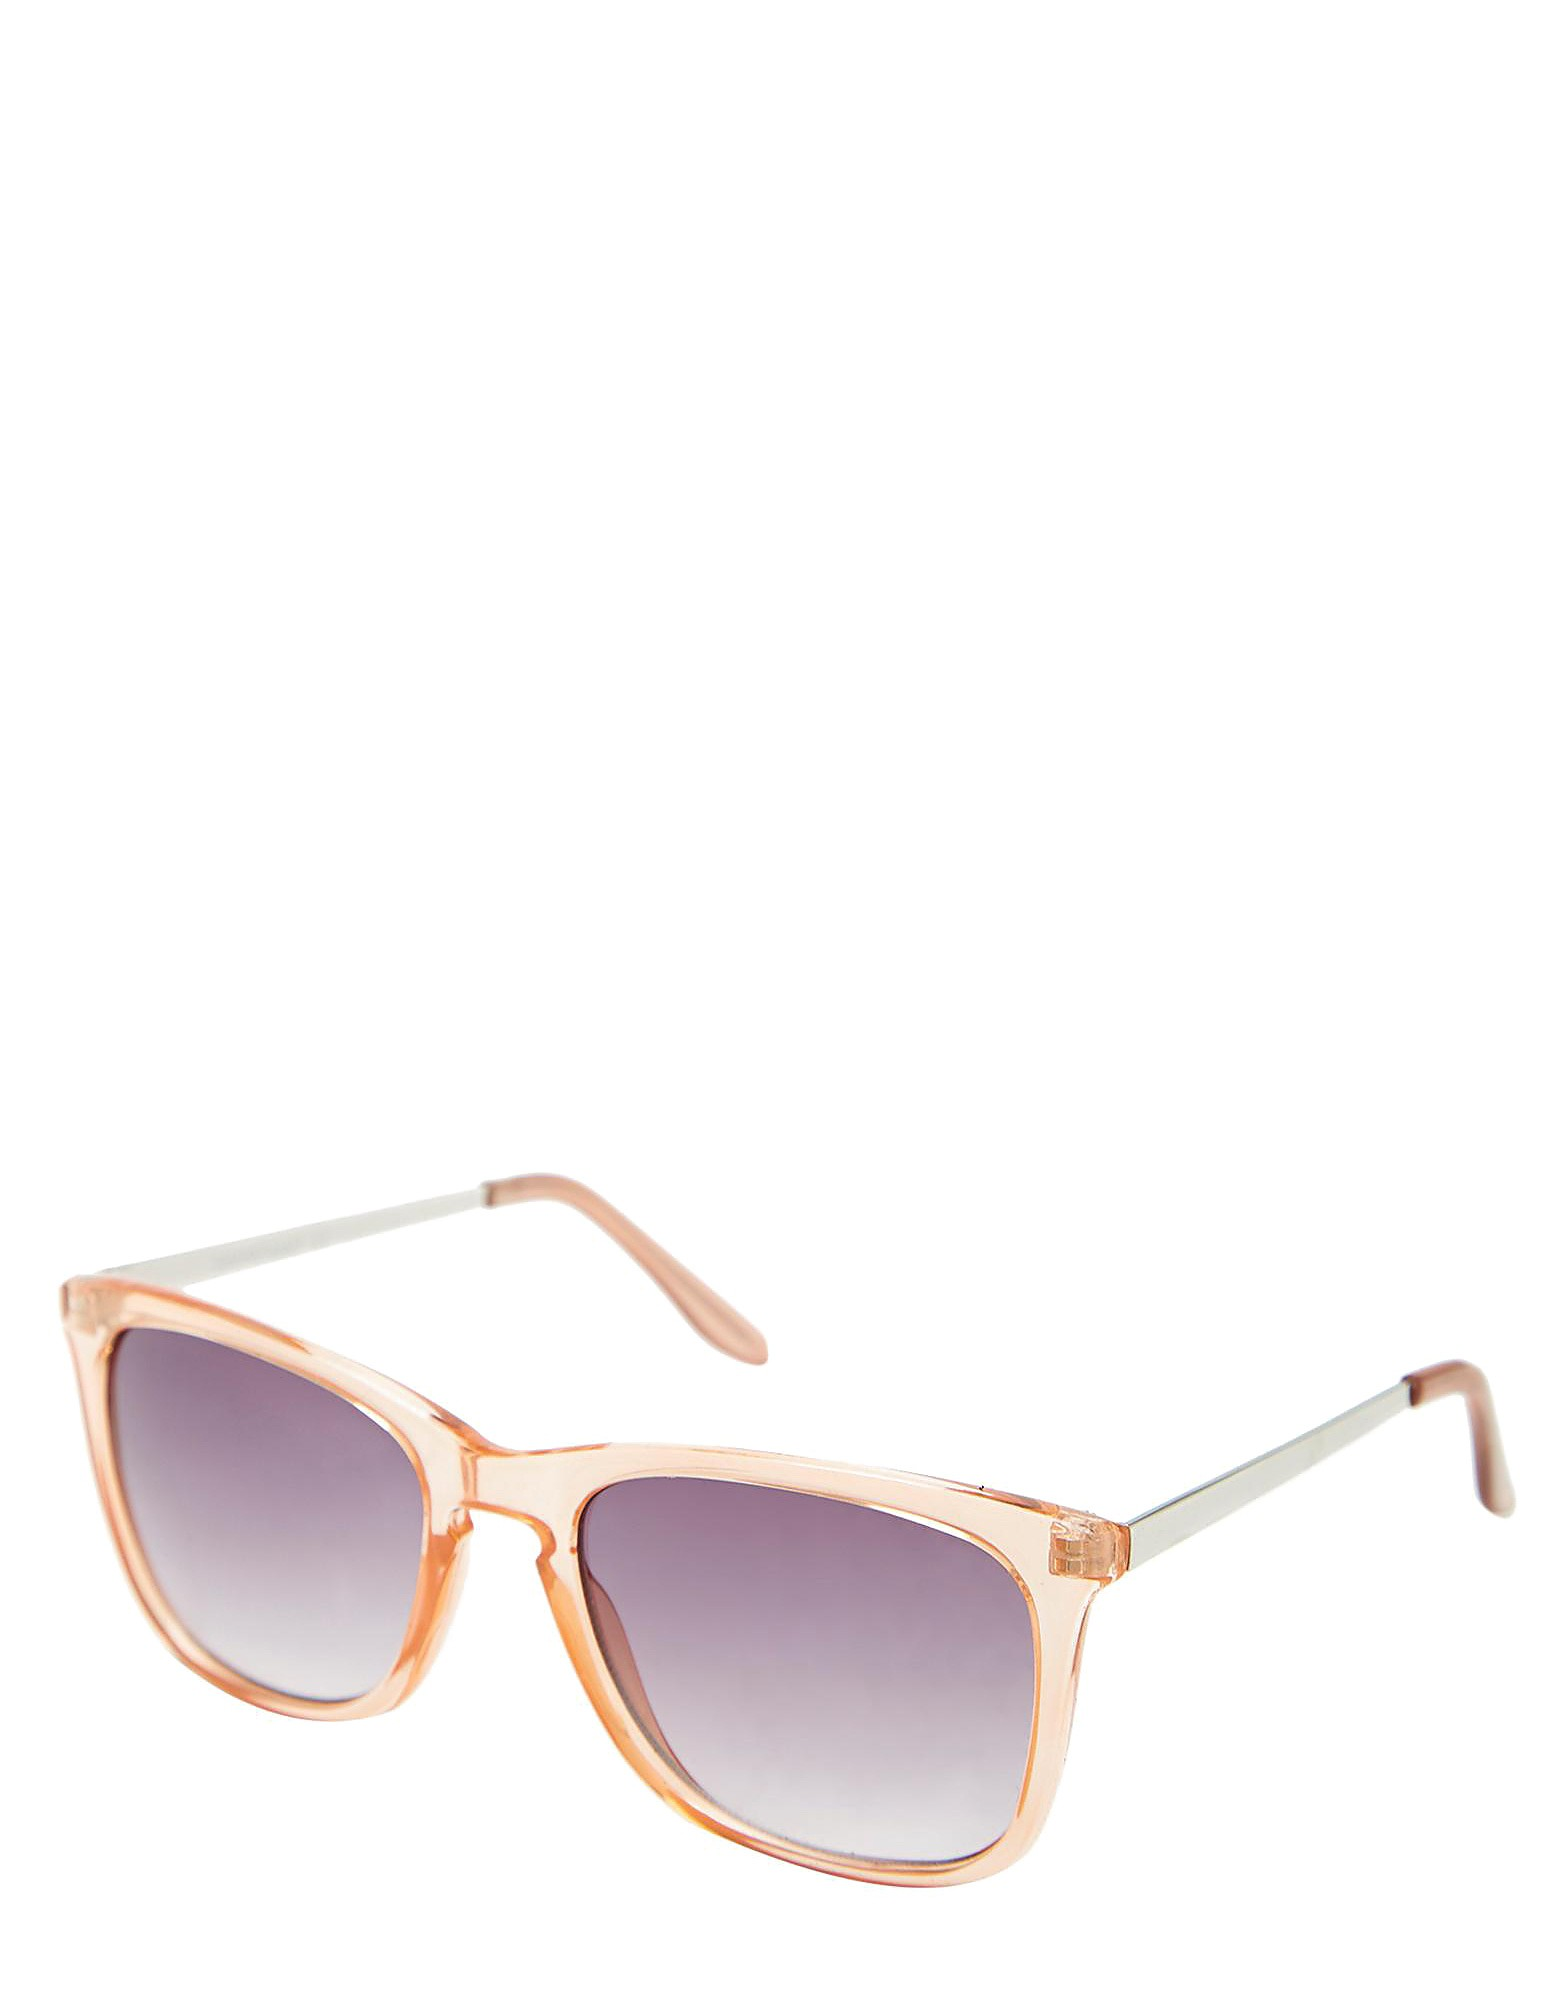 Brookhaven Poppy Sunglasses - Only at JD - Light Brown - Womens, Light Brown